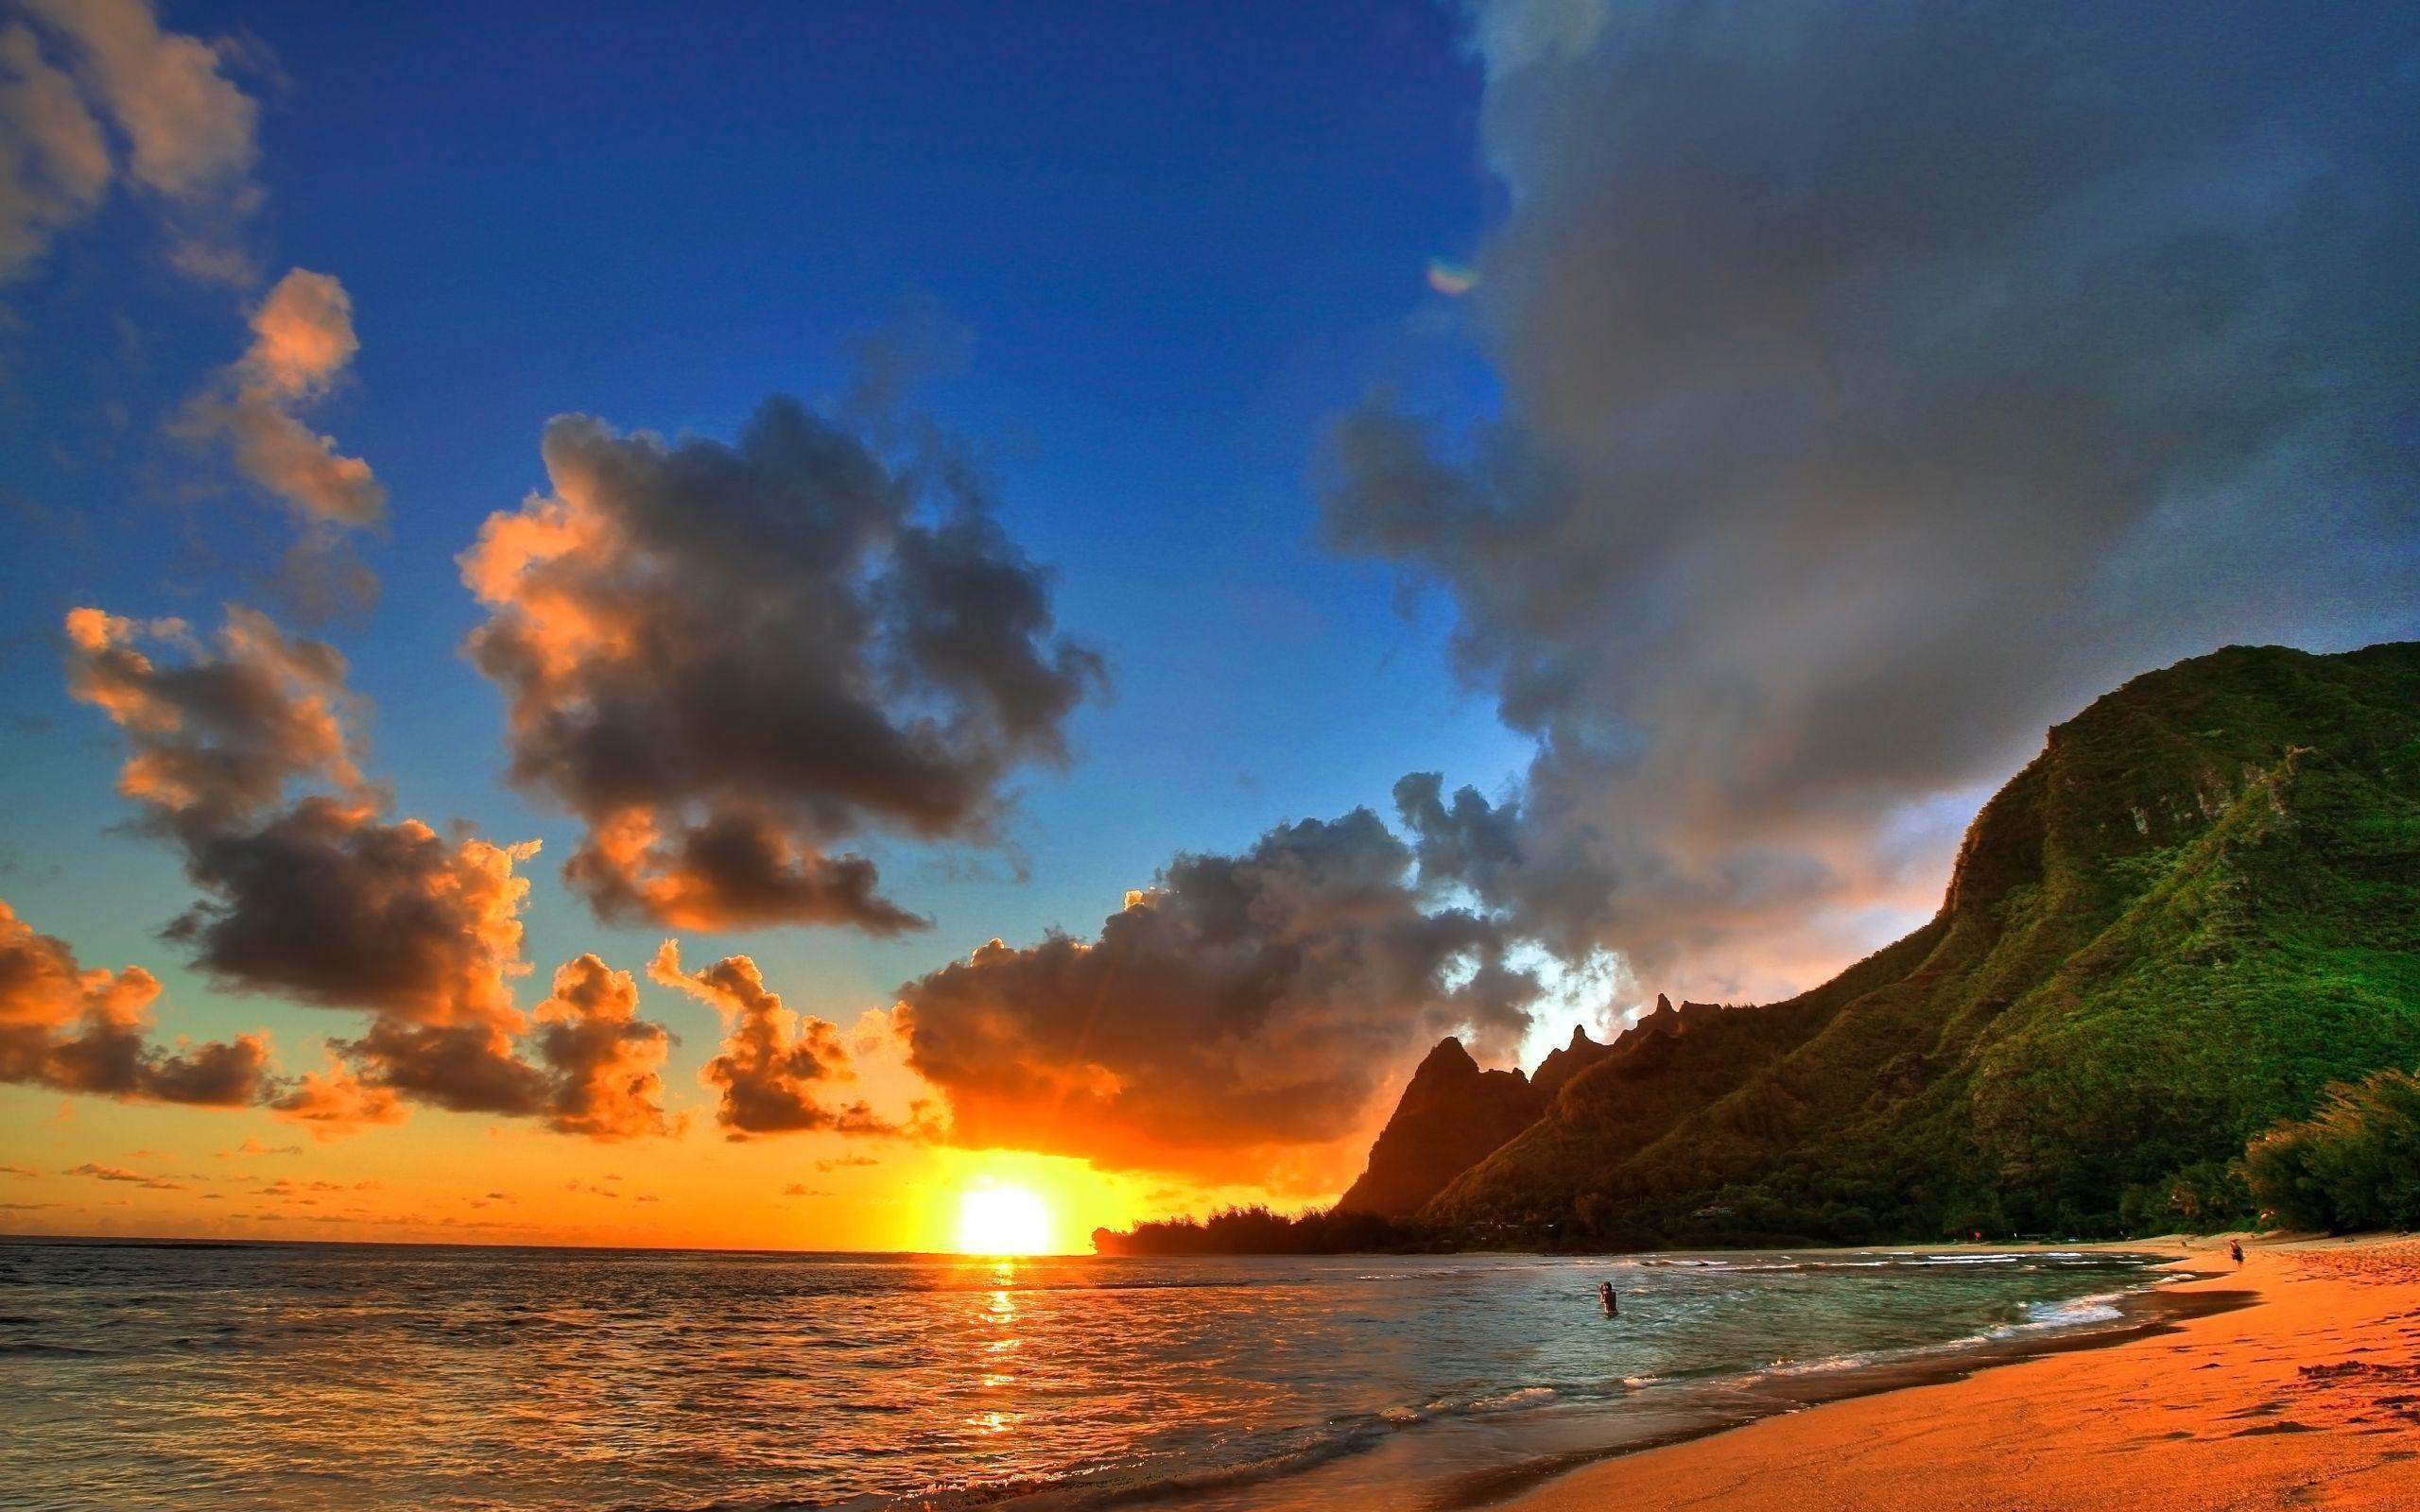 hawaii wallpaper free hd - photo #11